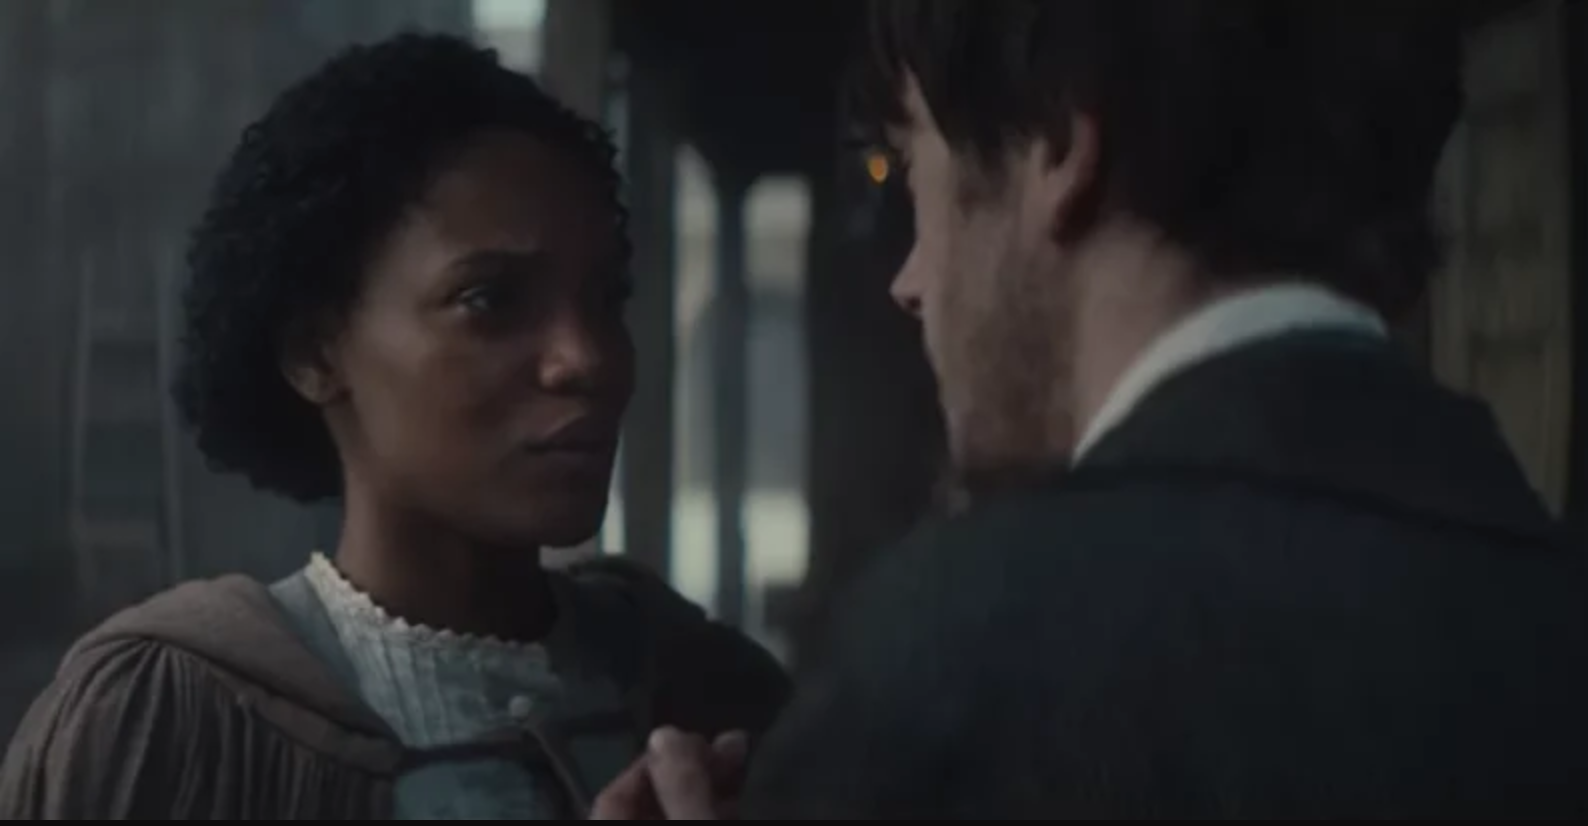 Ancestry.com TV ad romanticizes a slavery-era interracial couple